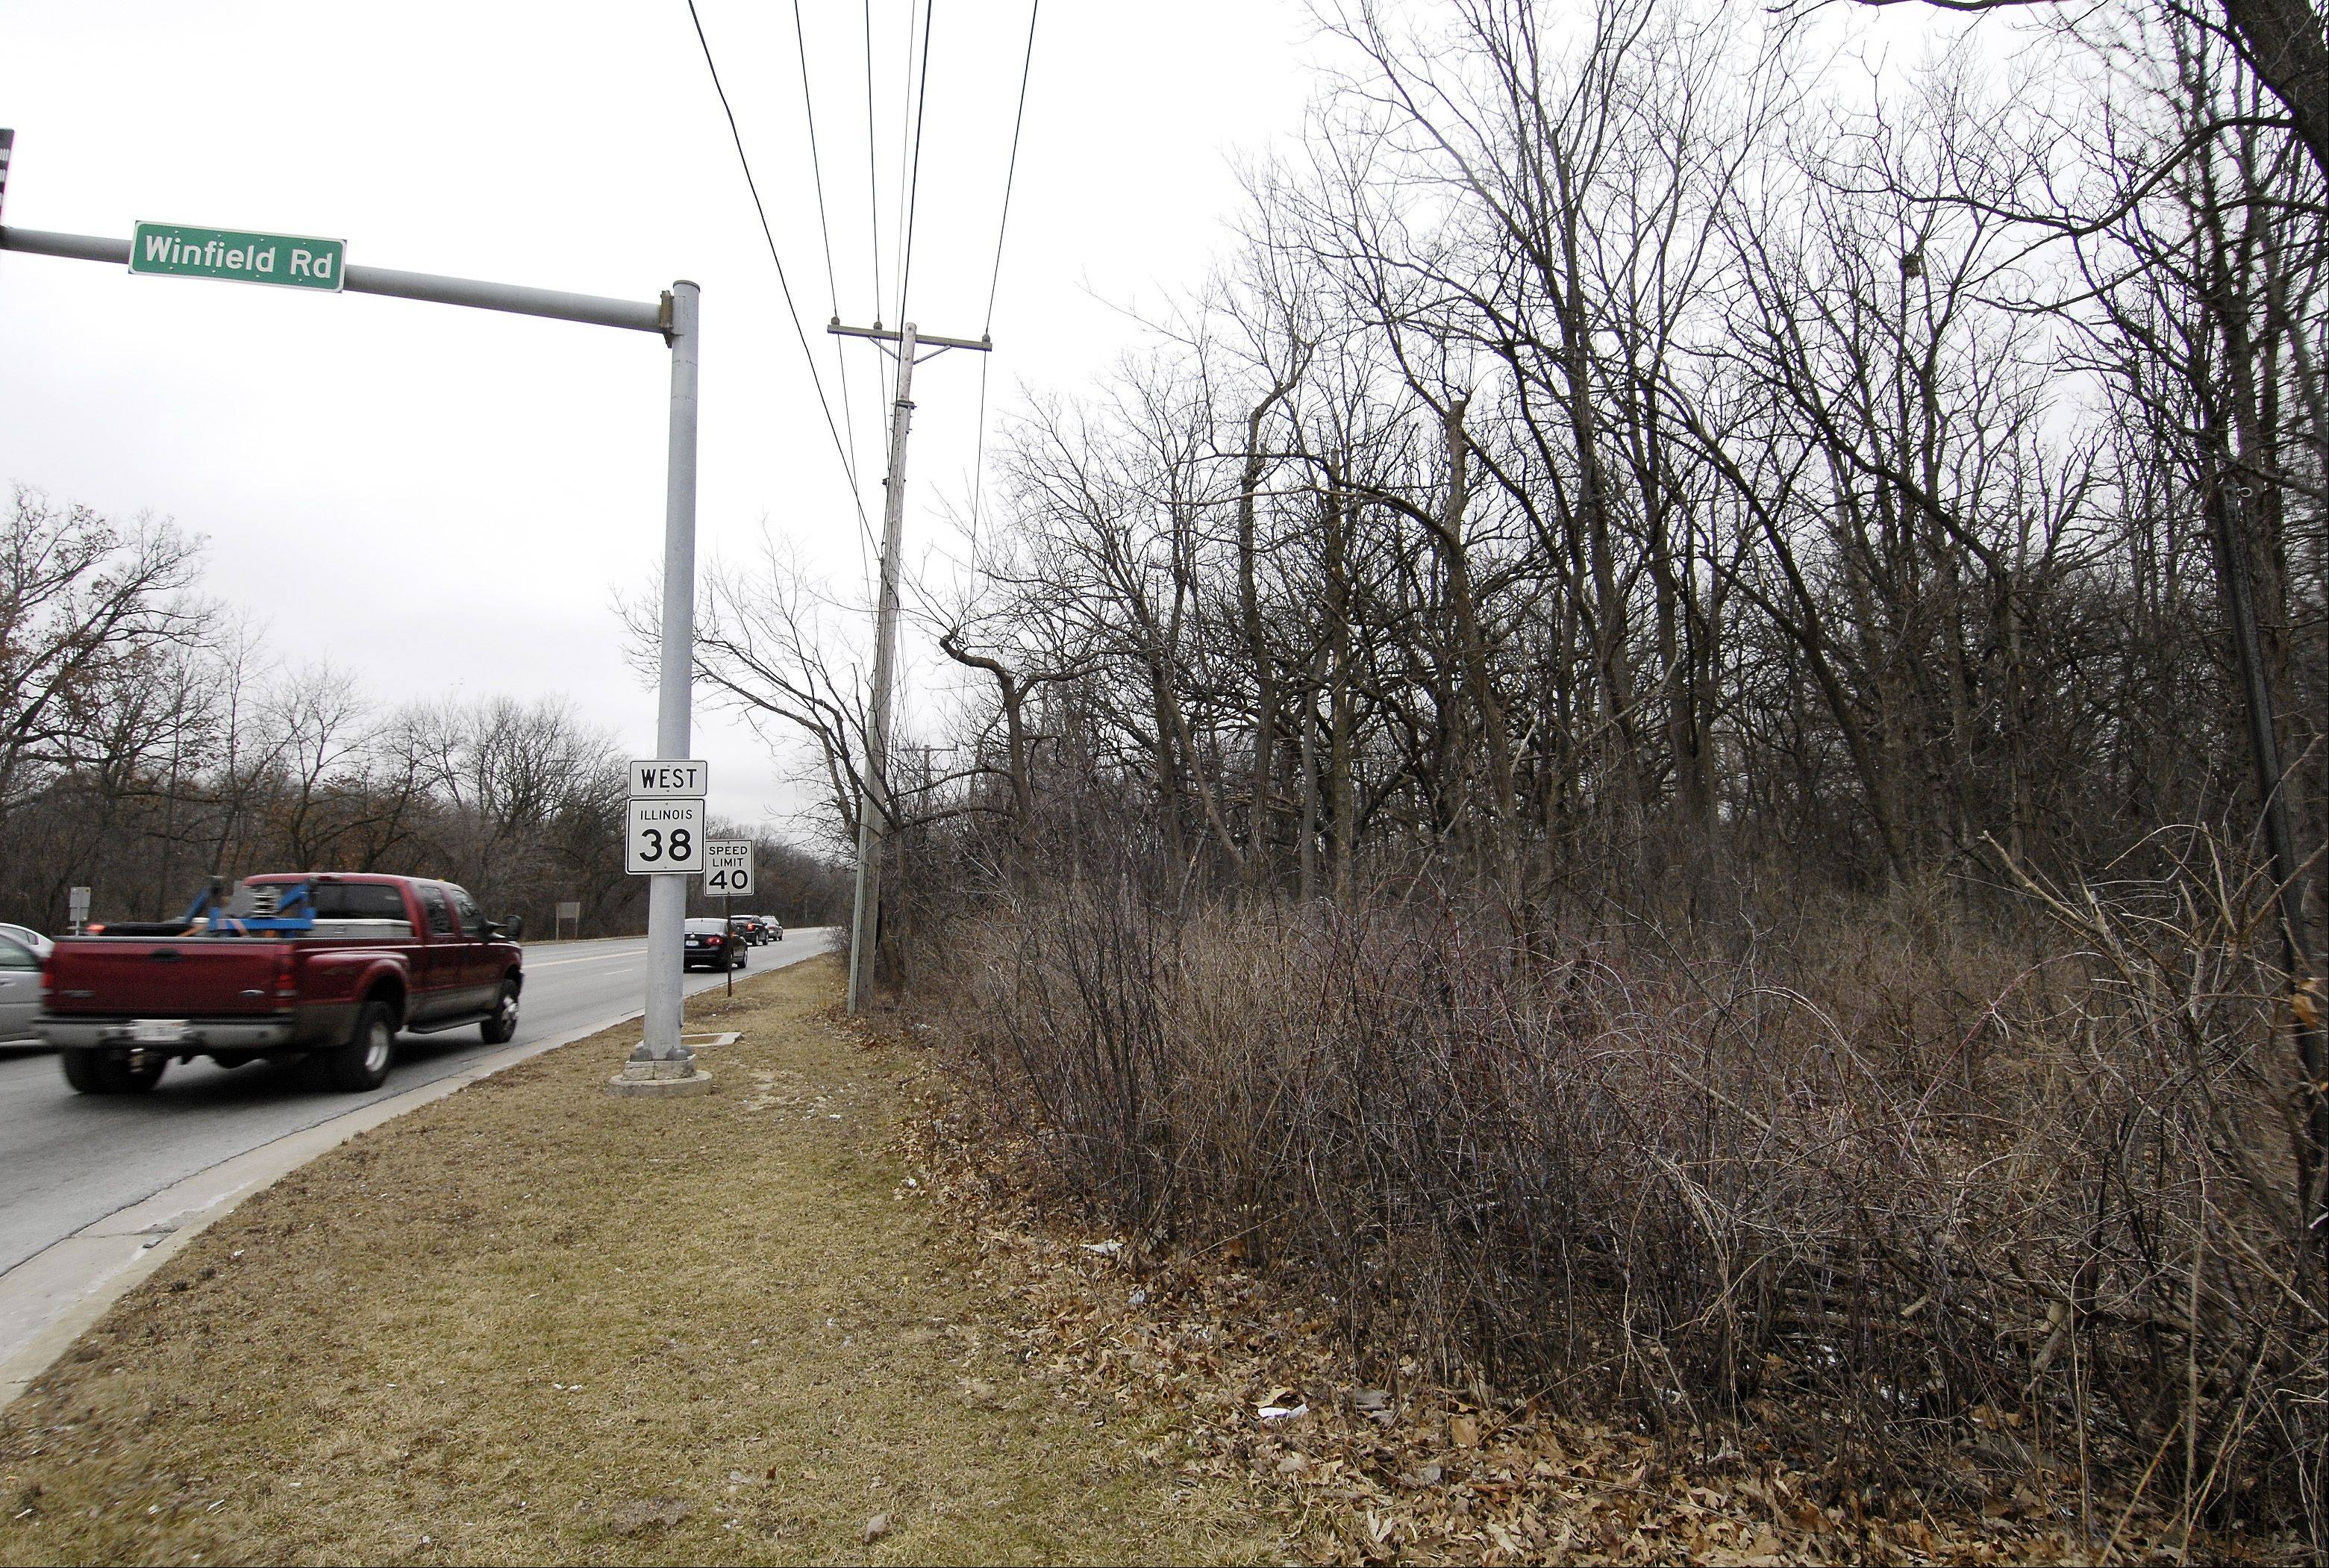 Winfield Village President Deborah Birutis has vetoed a village board decision to rezone parcels along Roosevelt and Garys Mill roads. Trustees say they plan to overturn the veto.